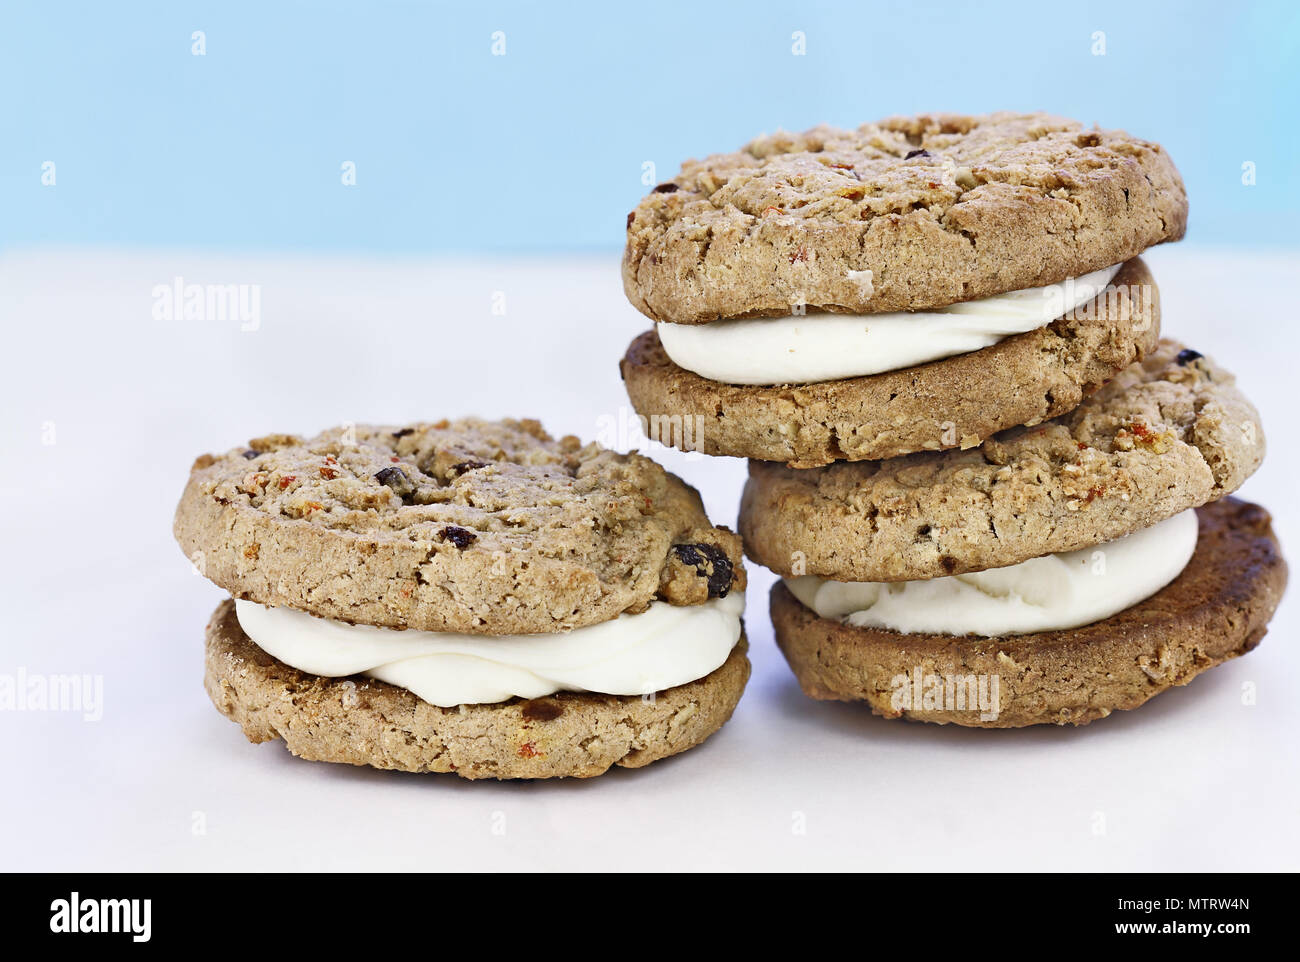 Carrot cake raisin cookies sandwiches stuffed with cream cheese icing. Room for copy text. - Stock Image